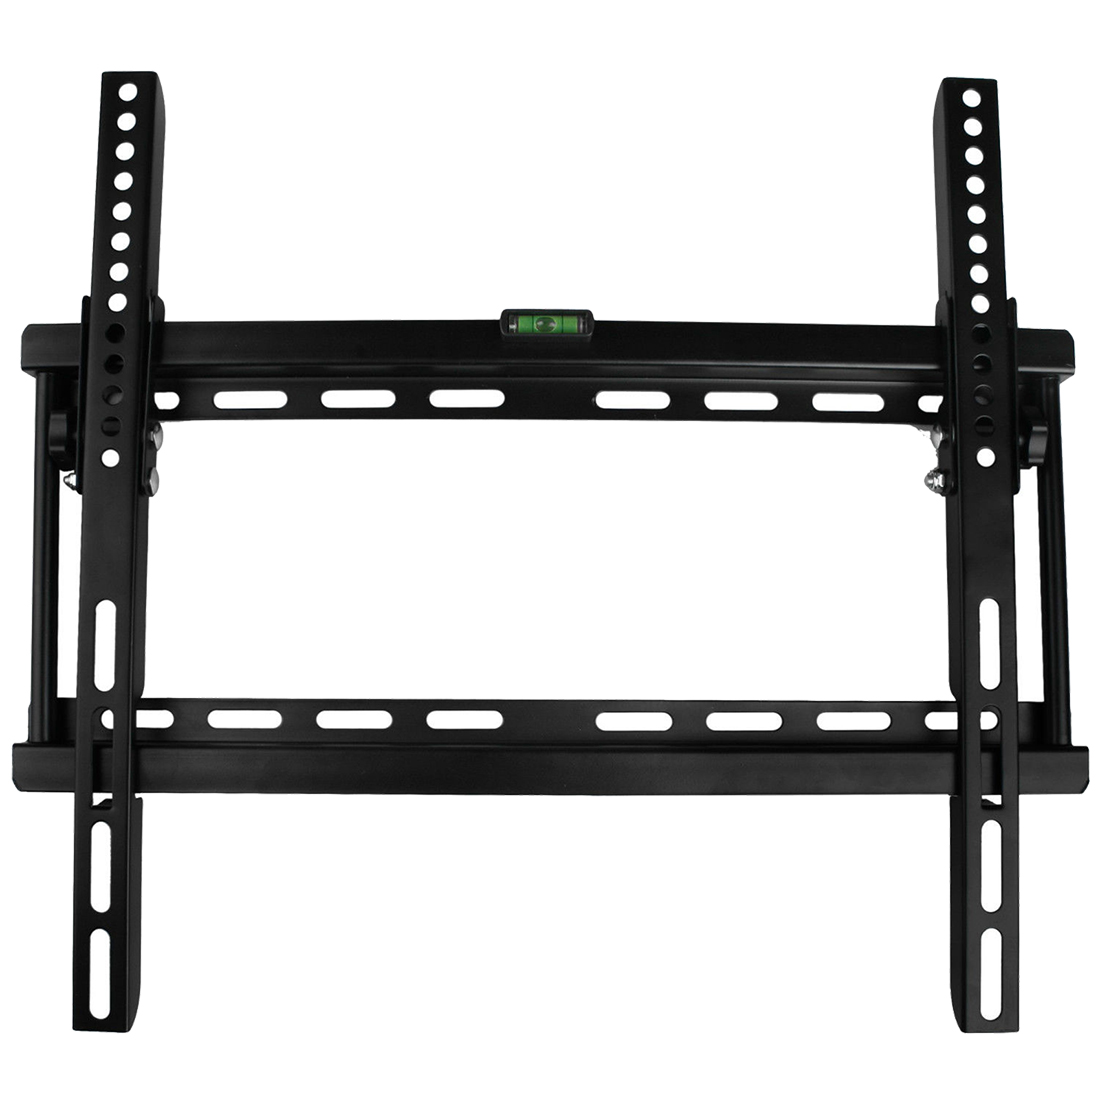 Bathroom Fixtures Cnim Hot Flat Slim Tv Wall Mount Bracket 23 28 30 32 40 42 48 50 55 Inch Led Lcd Plasma Home Improvement